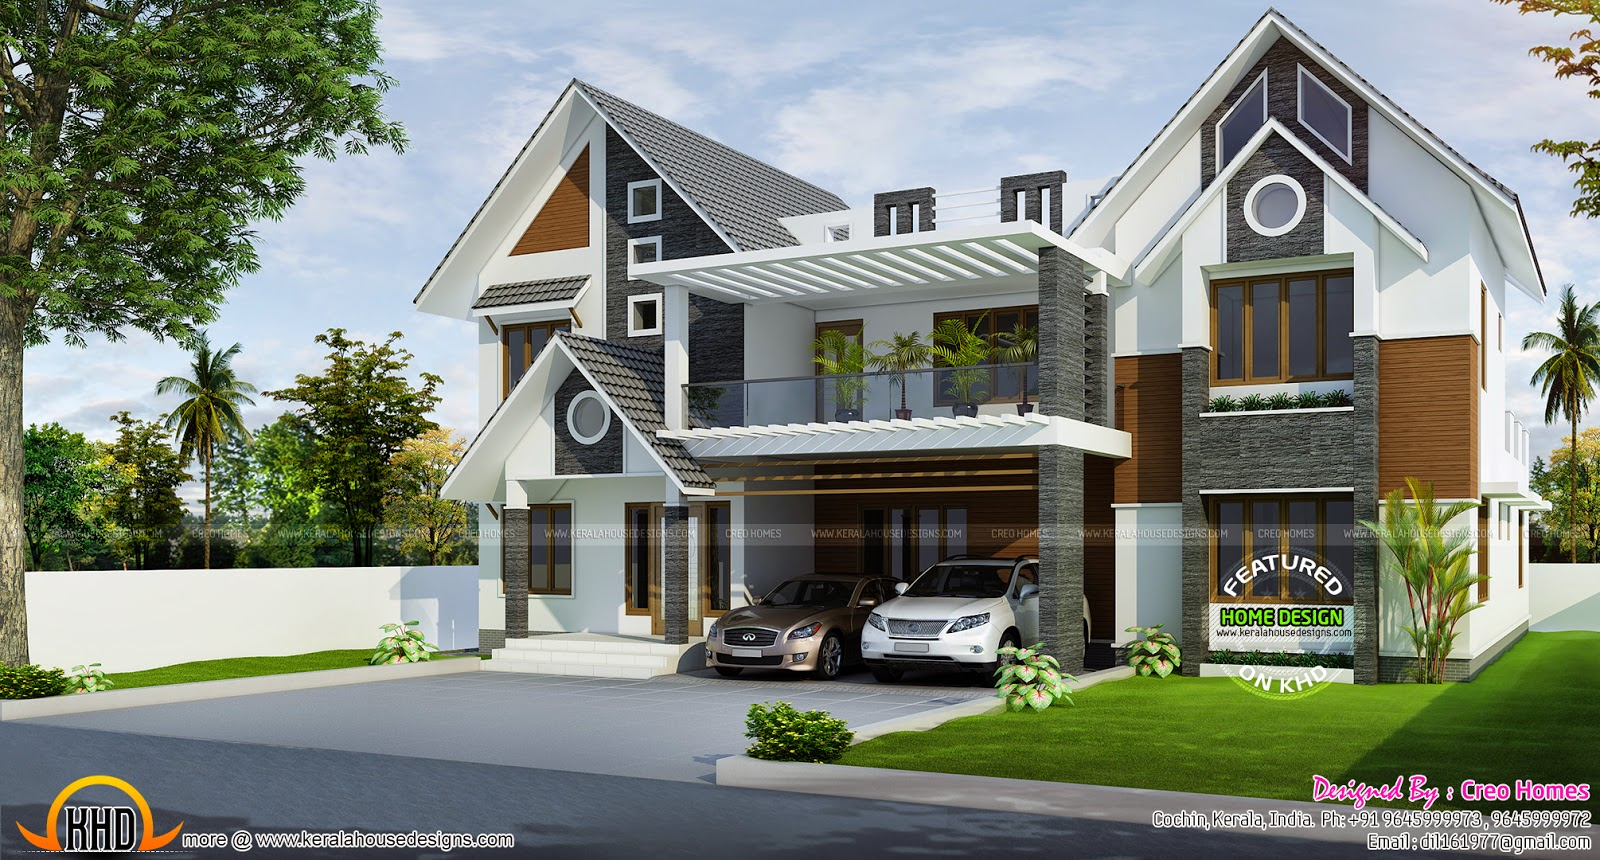 Modern sloped roof home kerala home design and floor plans for Sloped roof house plans in india